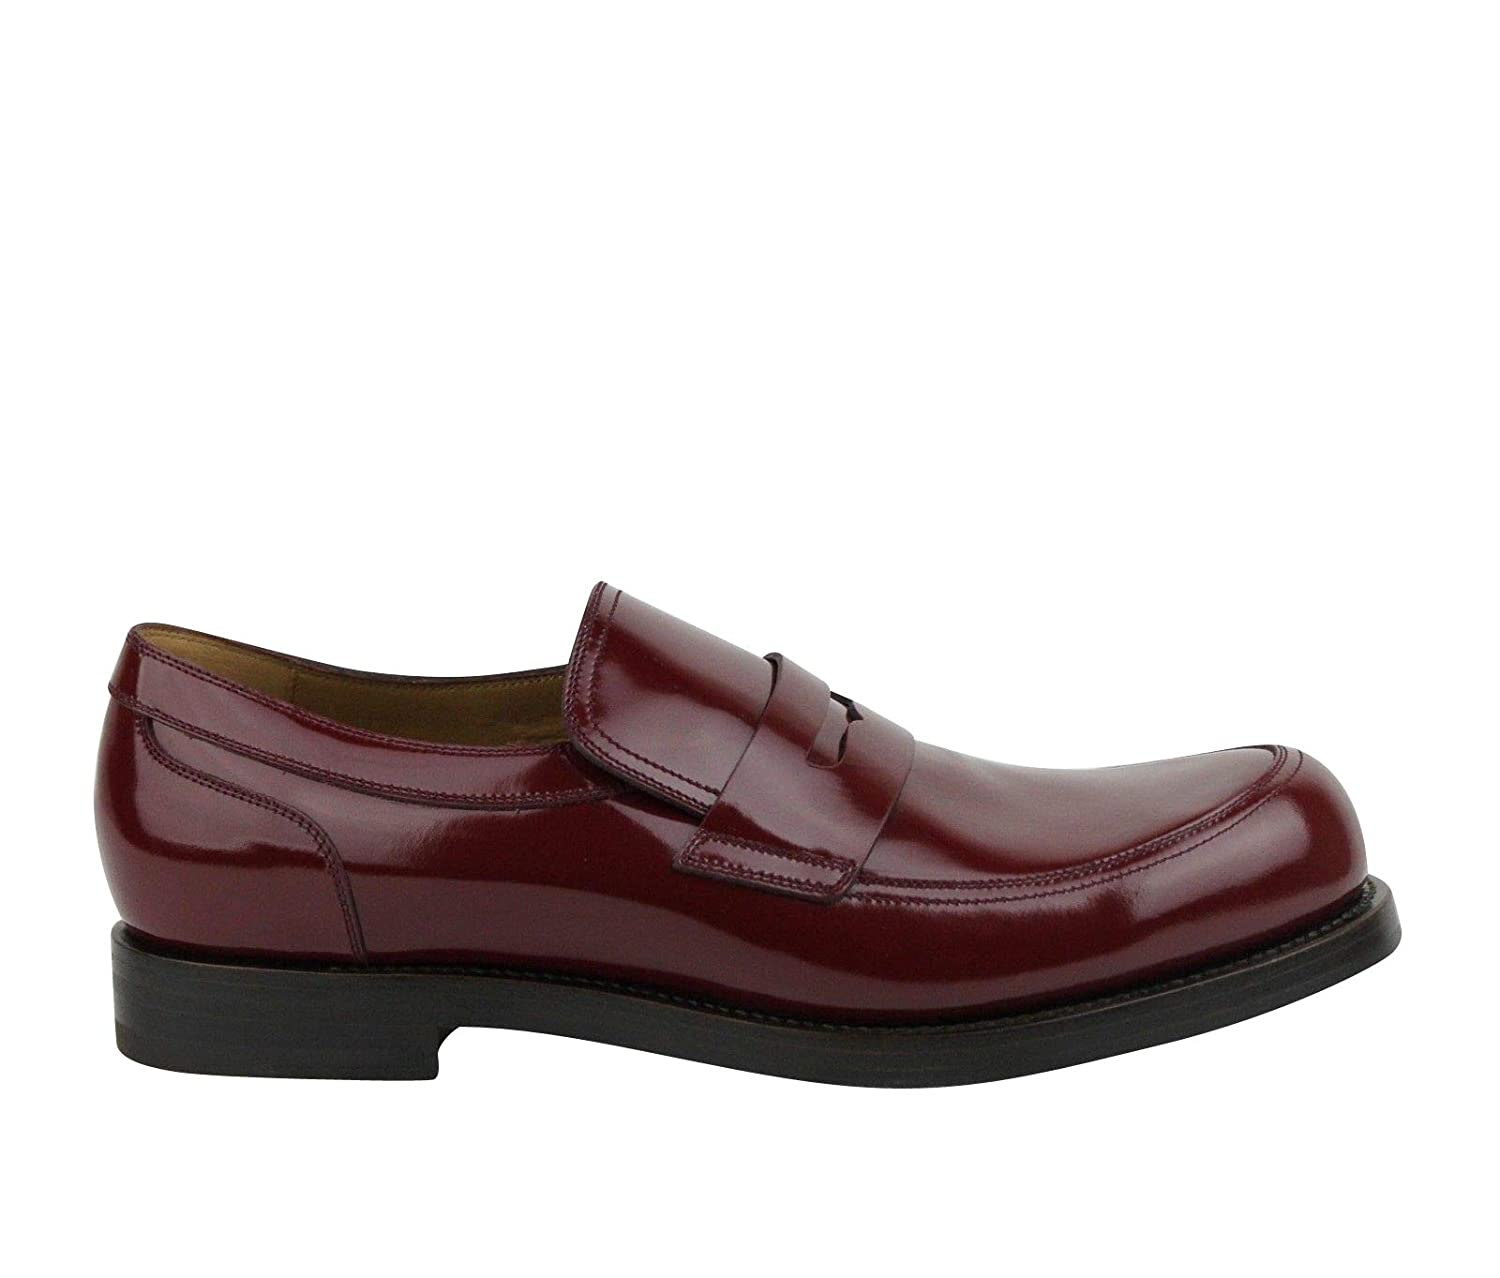 1d7f5974c40 Amazon.com  Gucci Polished Cocoa Penny Burgundy Leather Loafer Shoes 386541  6148 (9 G   10 US)  Shoes